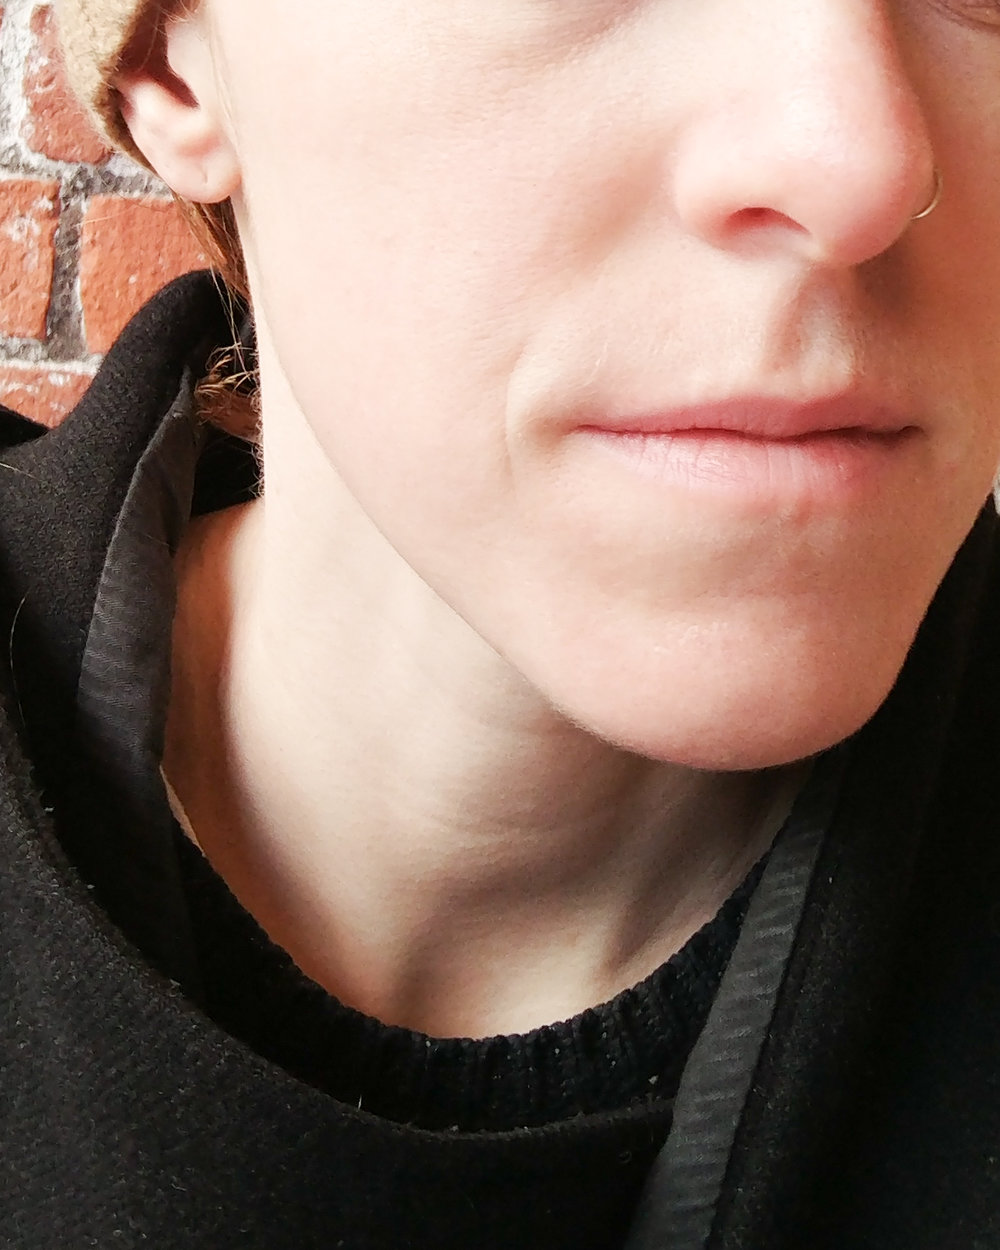 Three weeks later, after my skin had a chance to heal, using only natural products, no makeup!